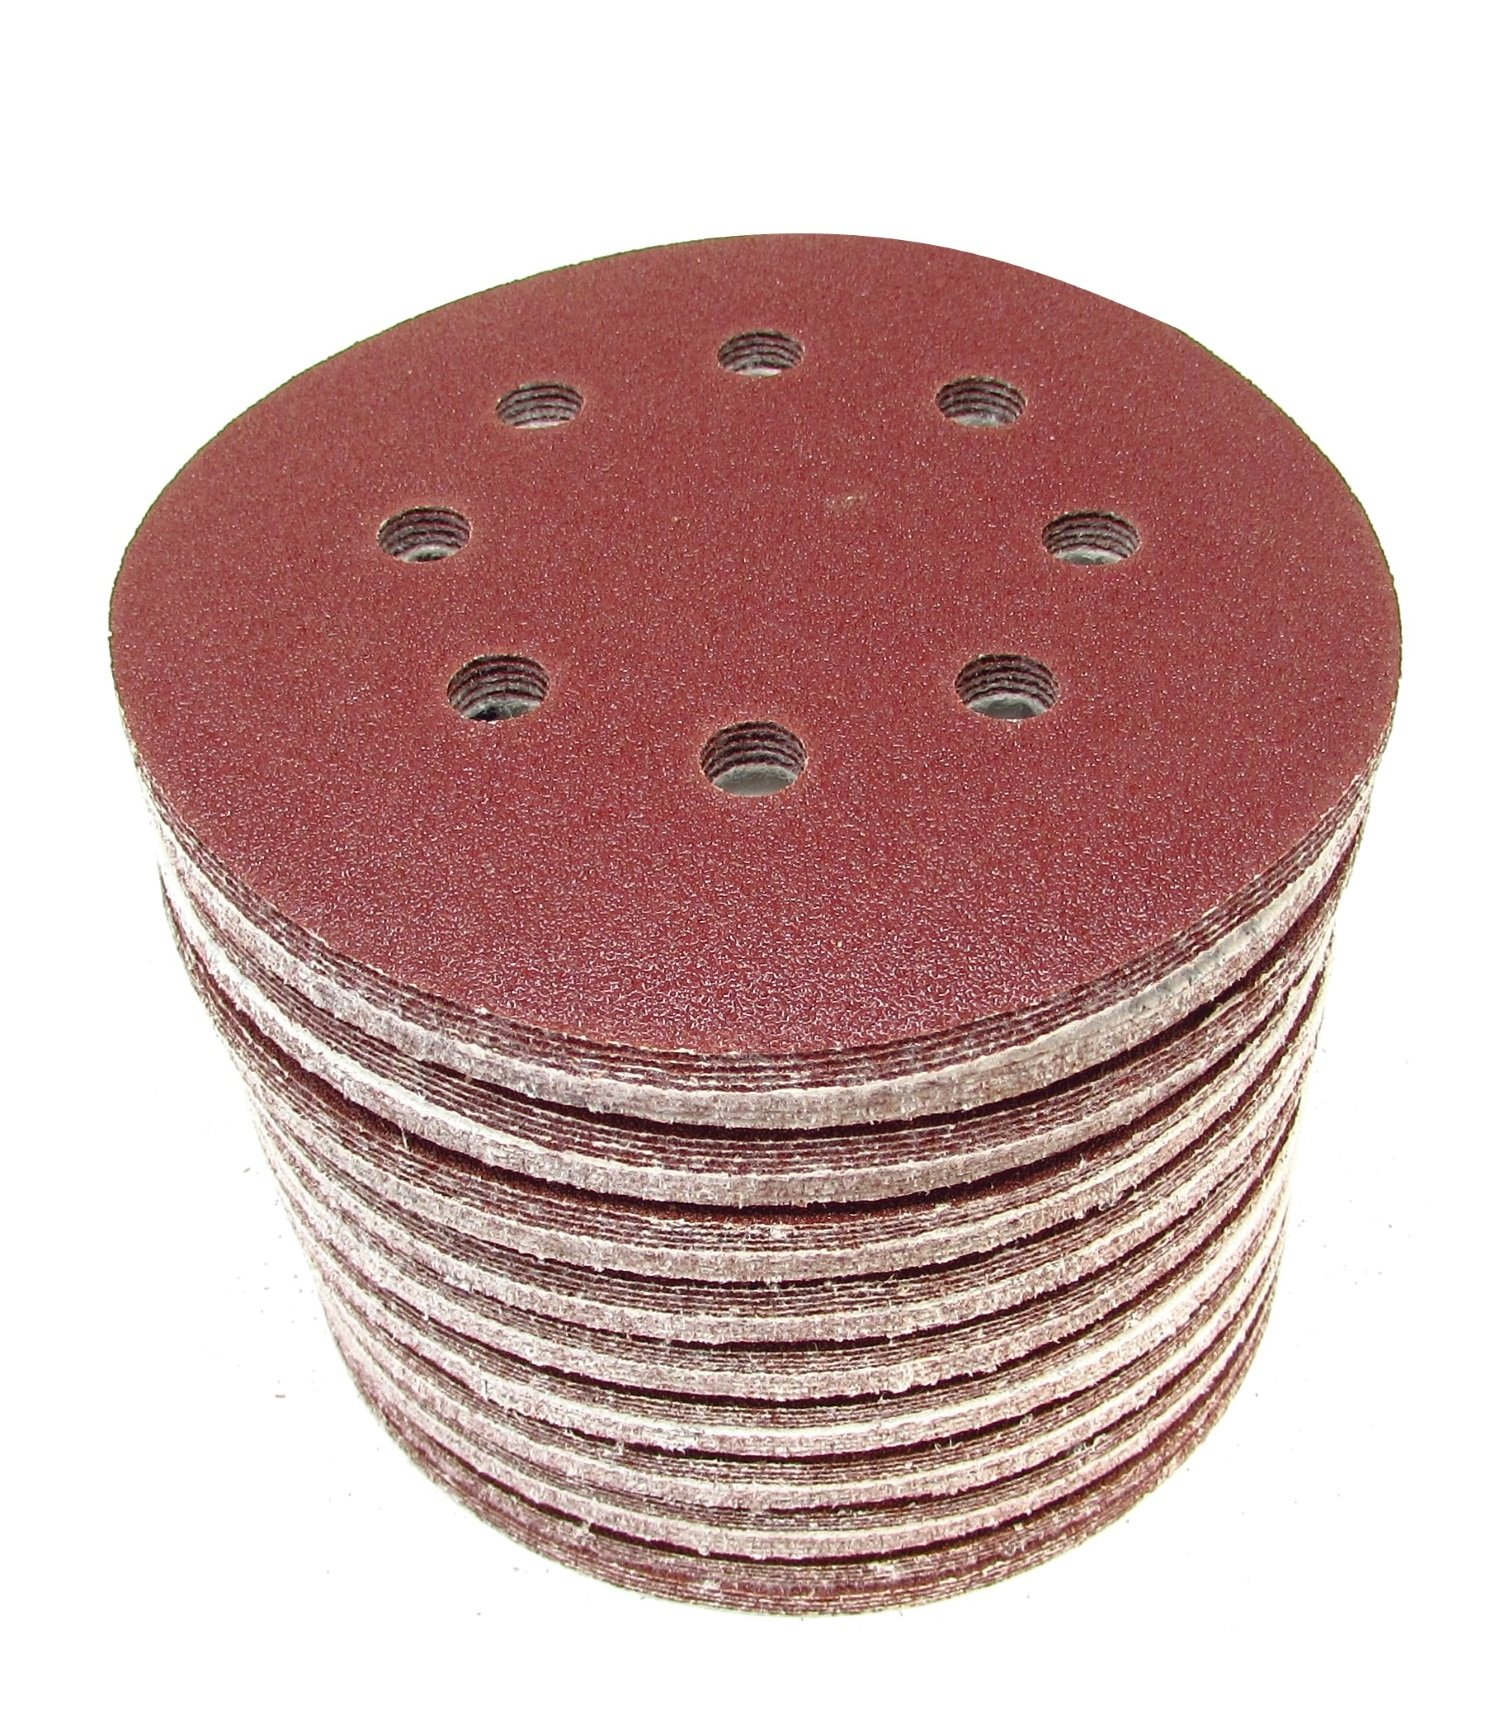 100 pack Sanding Discs 5 Inch [40 GRIT] 8 Hole Hook and Loop Backing